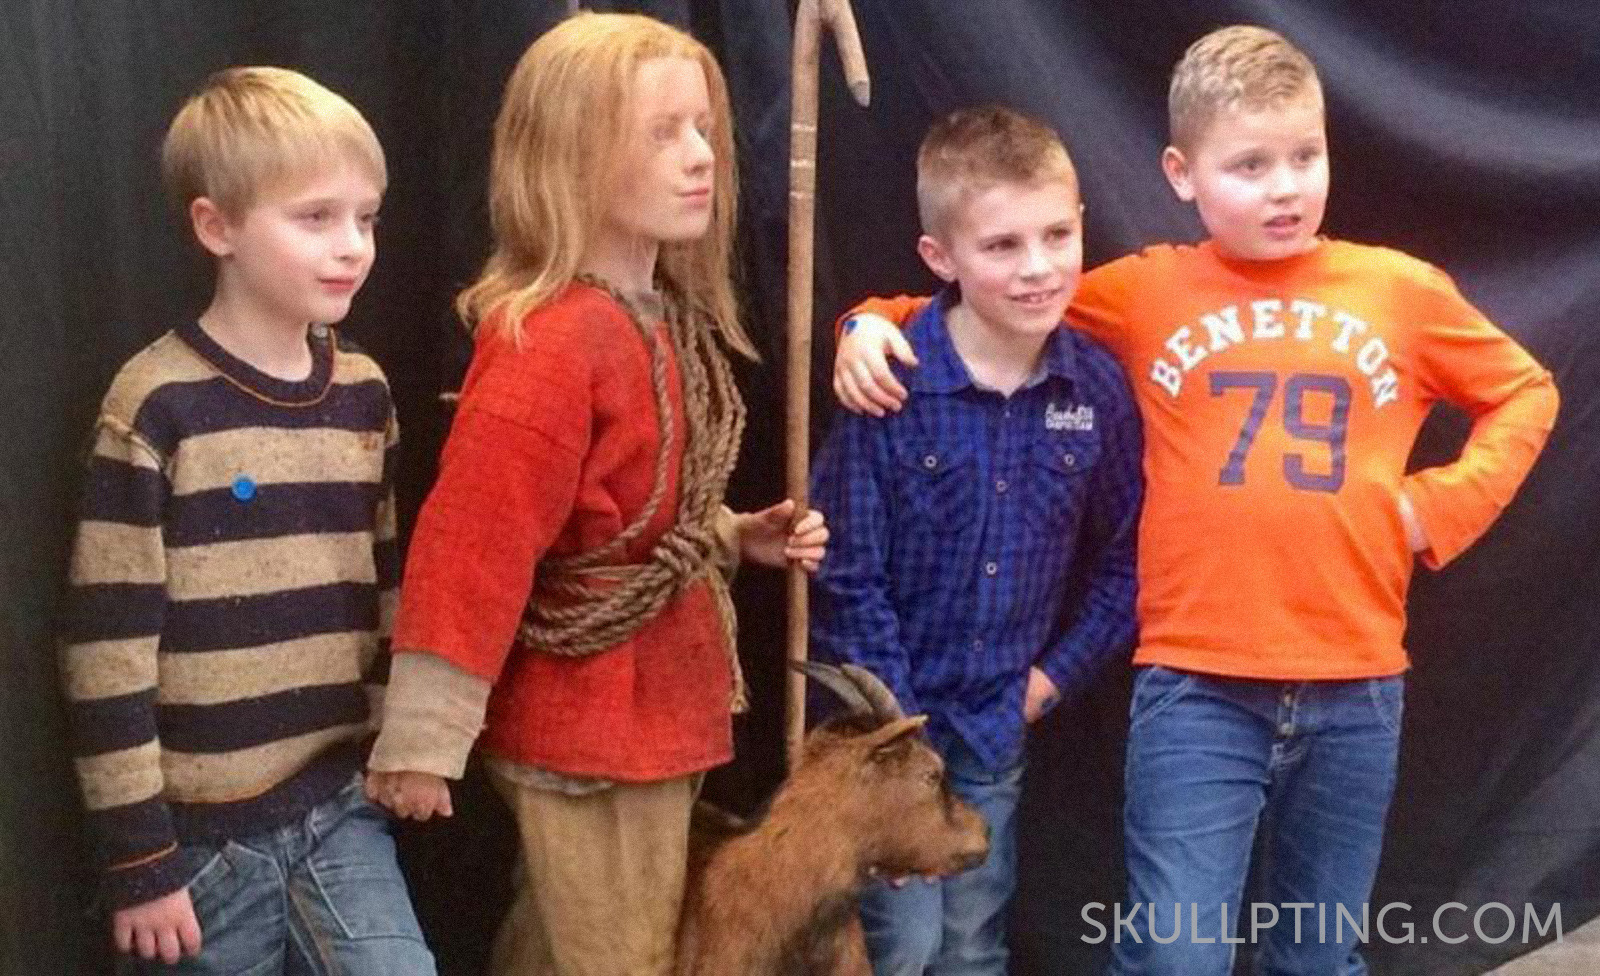 At the official revealing of Aak, the iron age boy. Picture: NOS jeugdjournaal